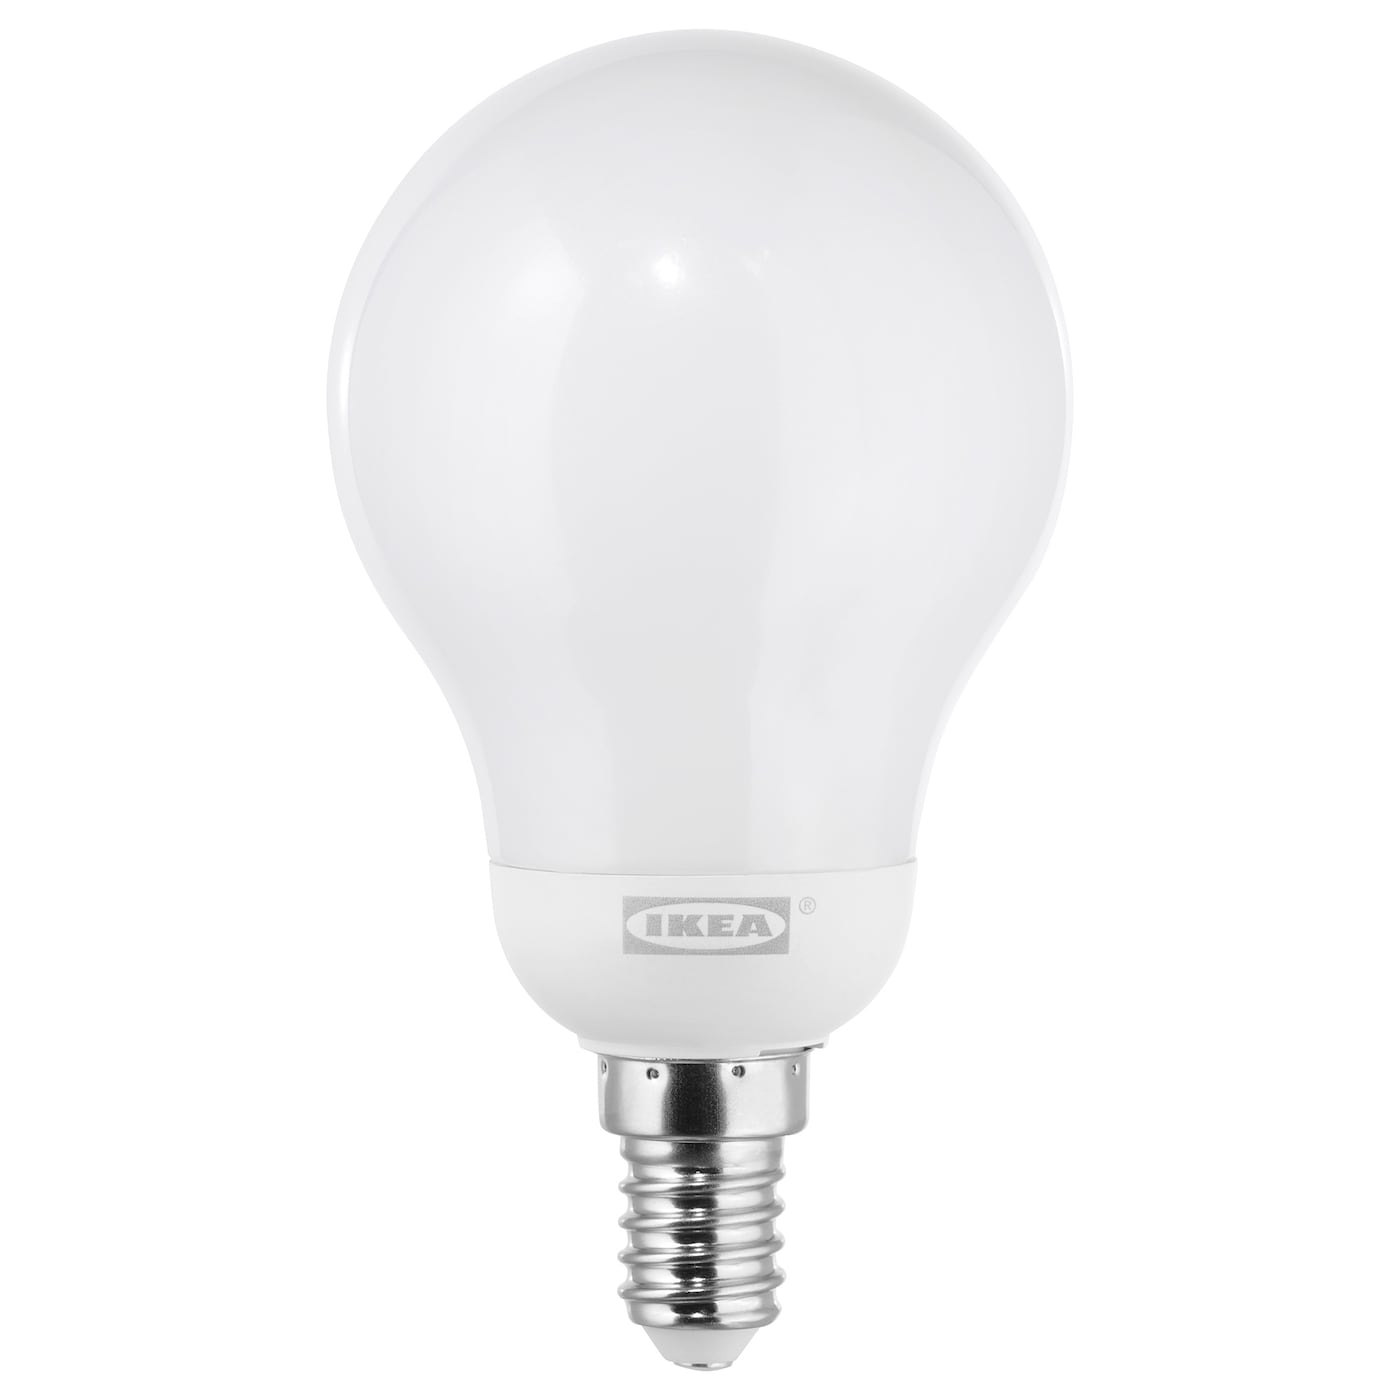 LEDARE LED bulb E14 600 lumen Warm dimming/globe opal white - IKEA